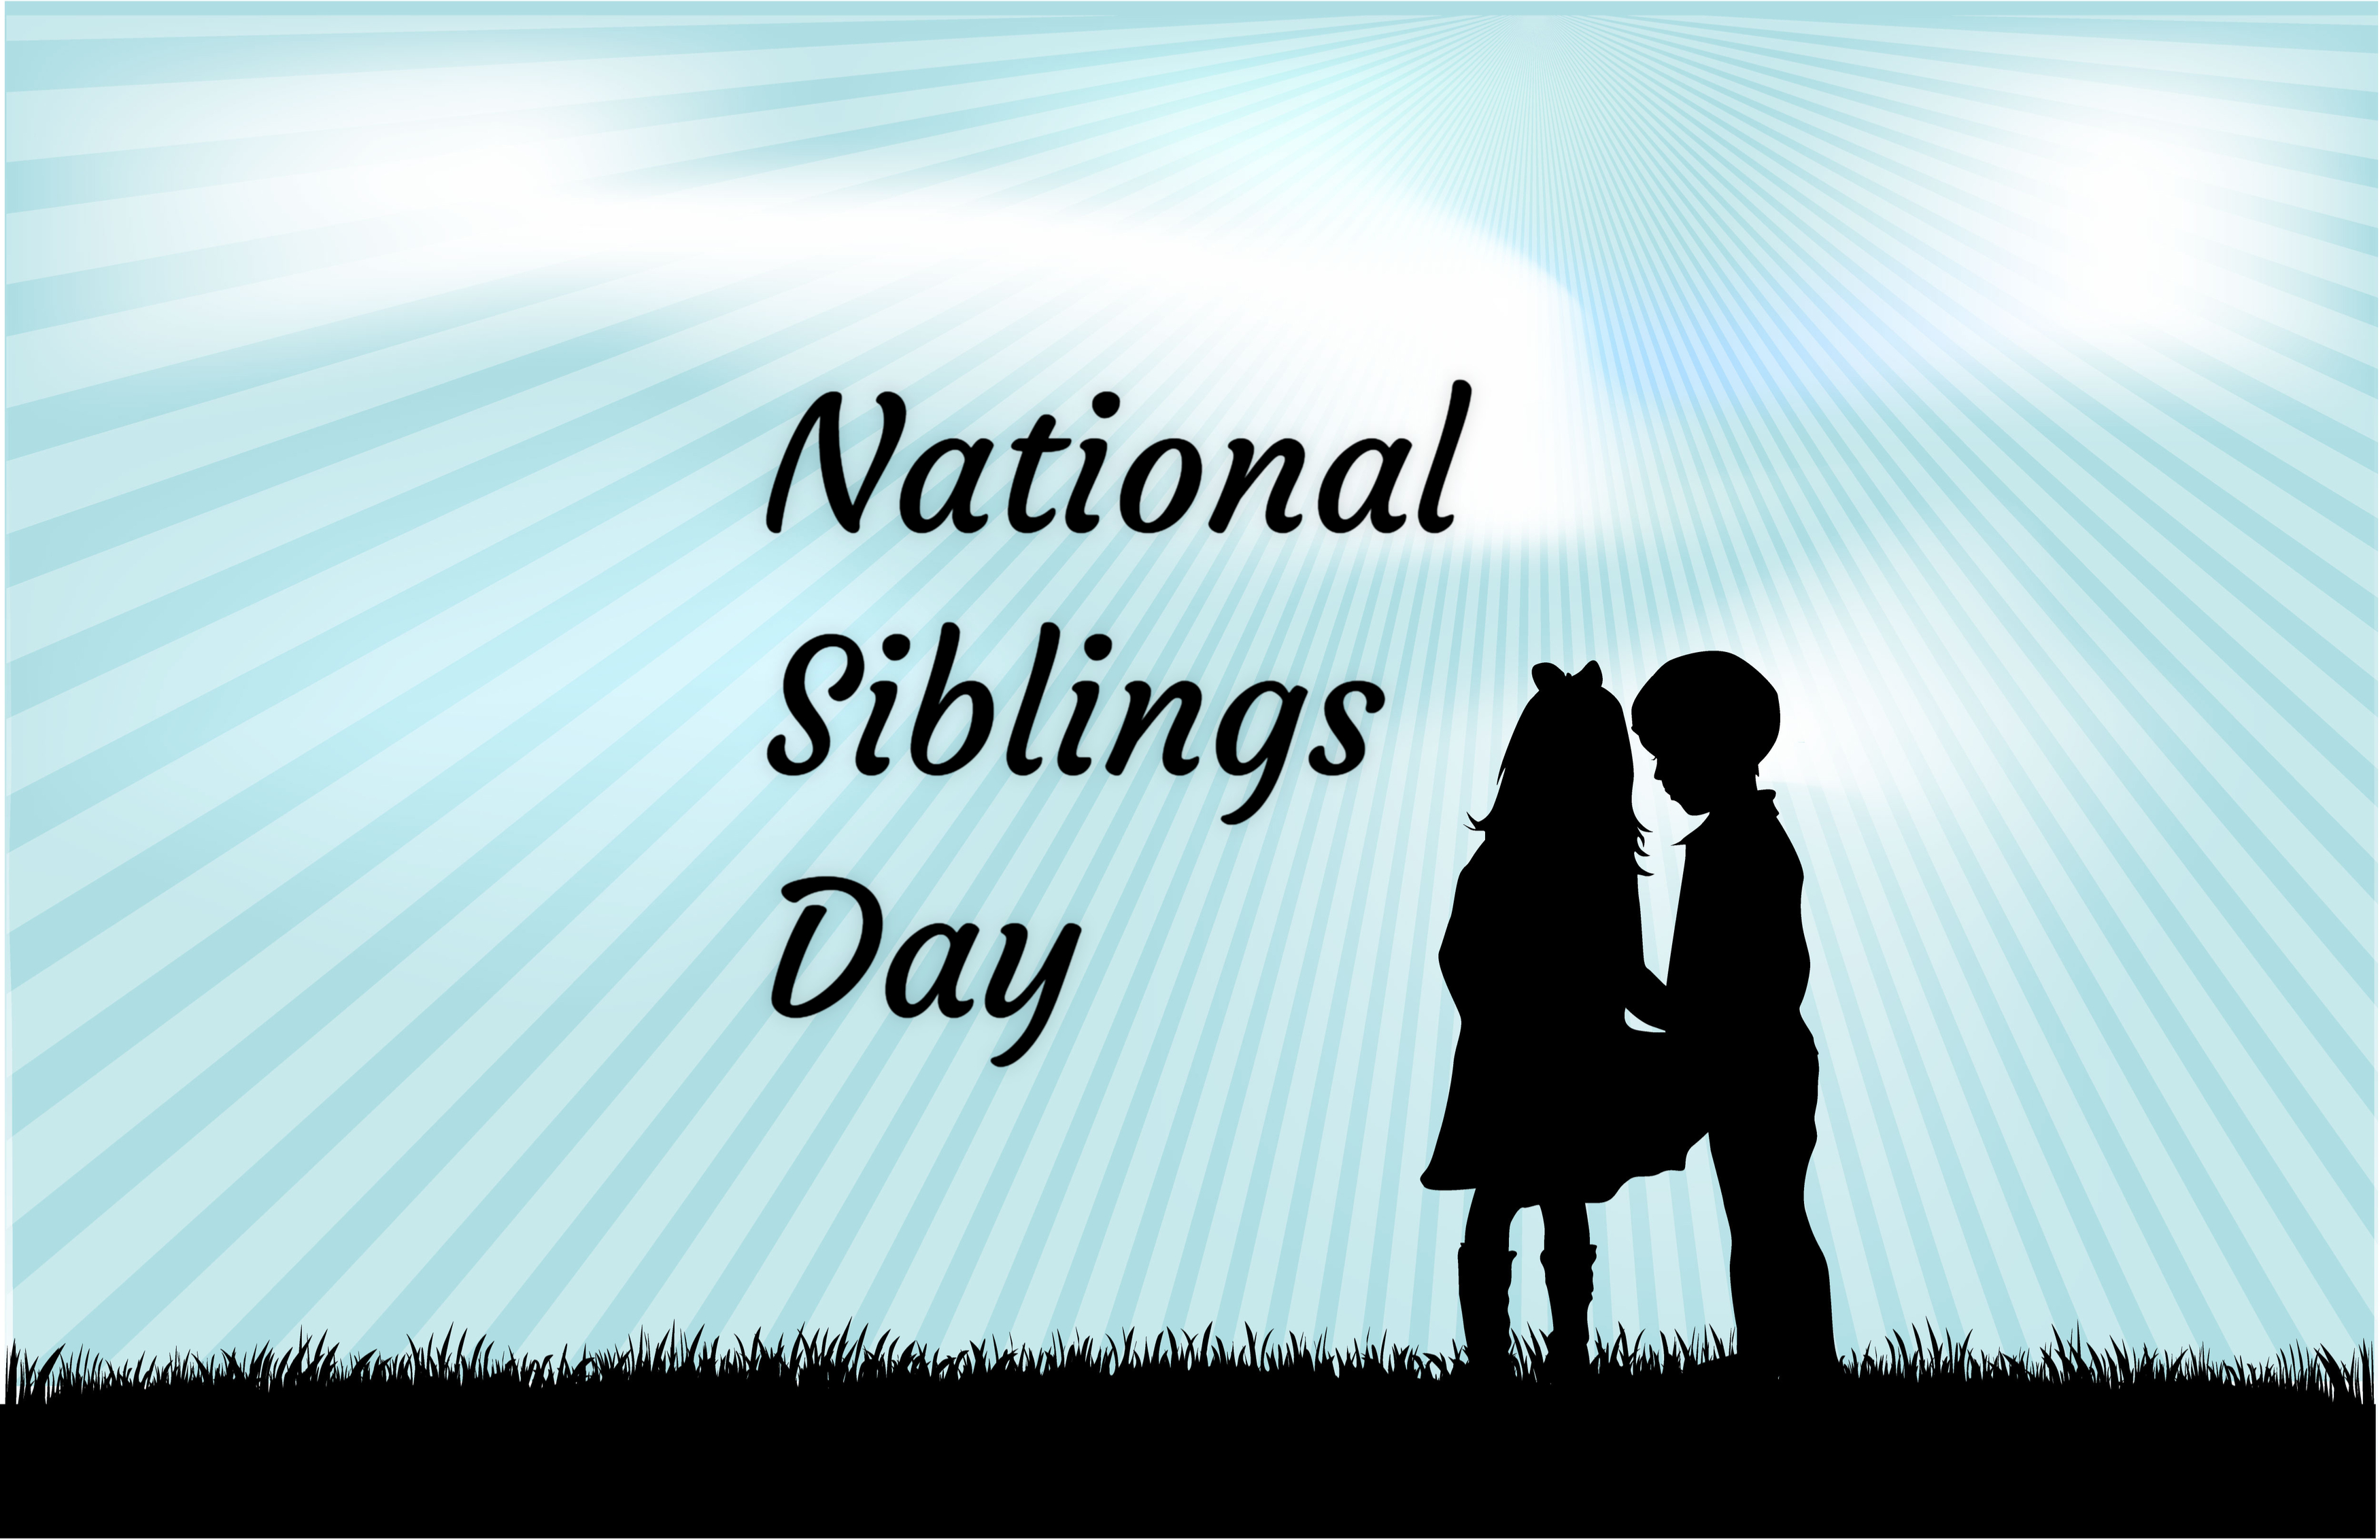 National Siblings Day In 2021 2022 When Where Why How Is Celebrated